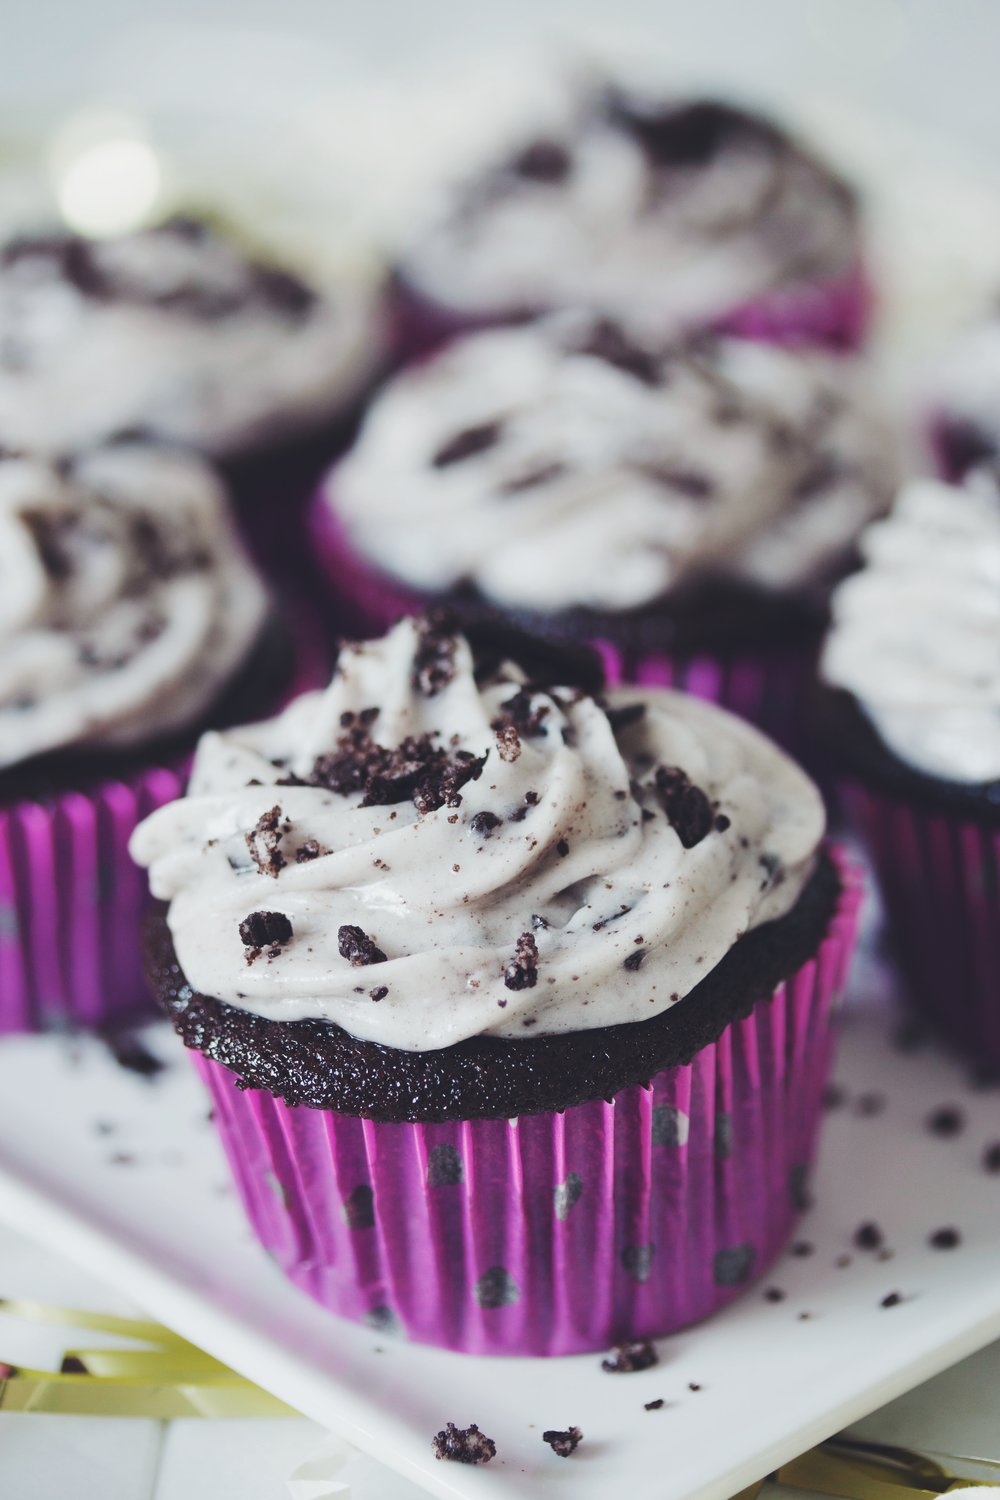 vegan cookies 'n' cream cupcakes | RECIPE on hotforfoodblog.com